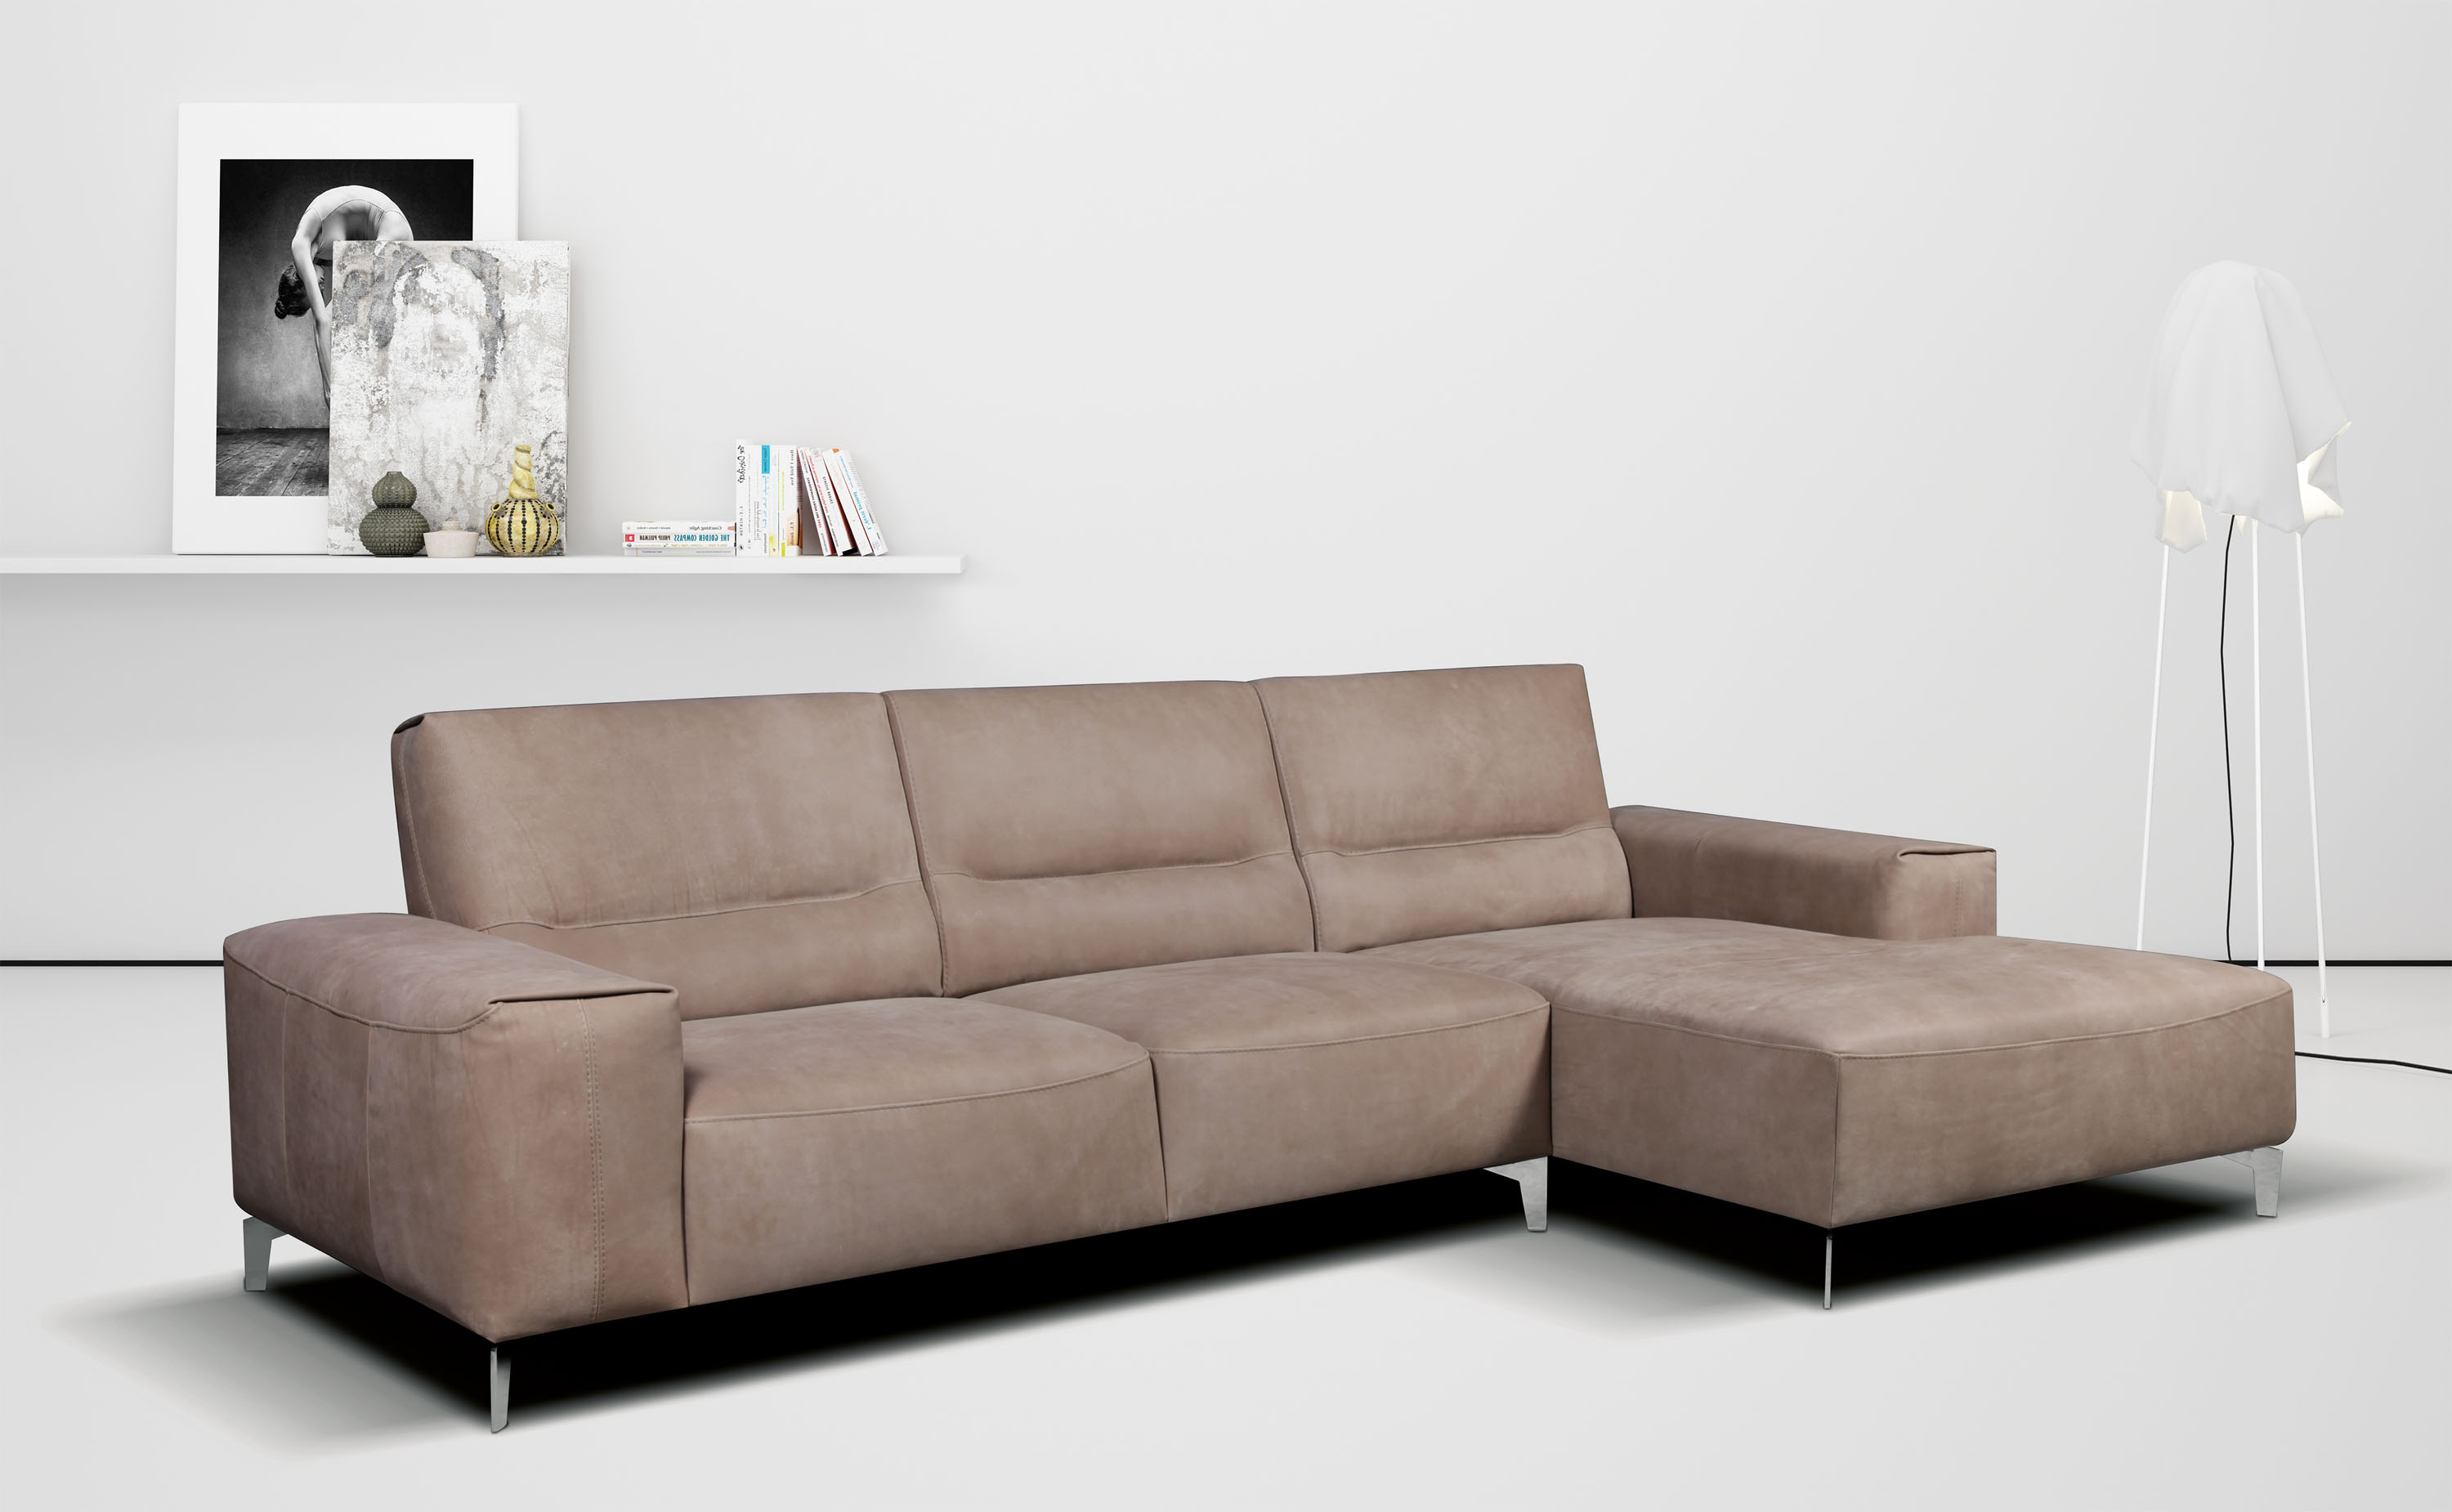 images of leather sectional sofas cheap corner northern ireland small studio apartment size with optional